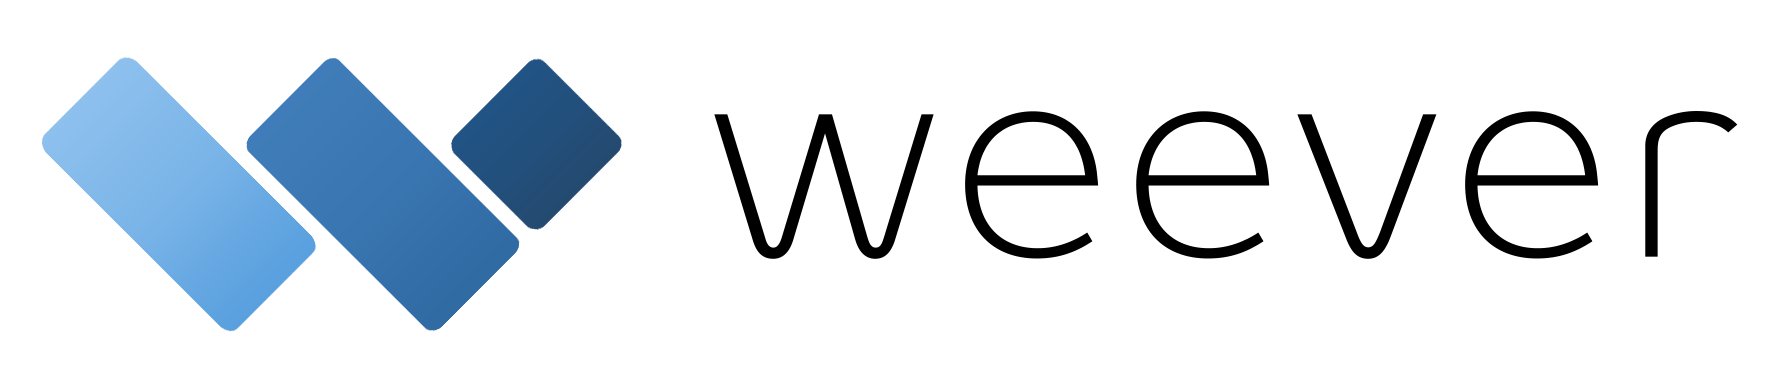 weever logo